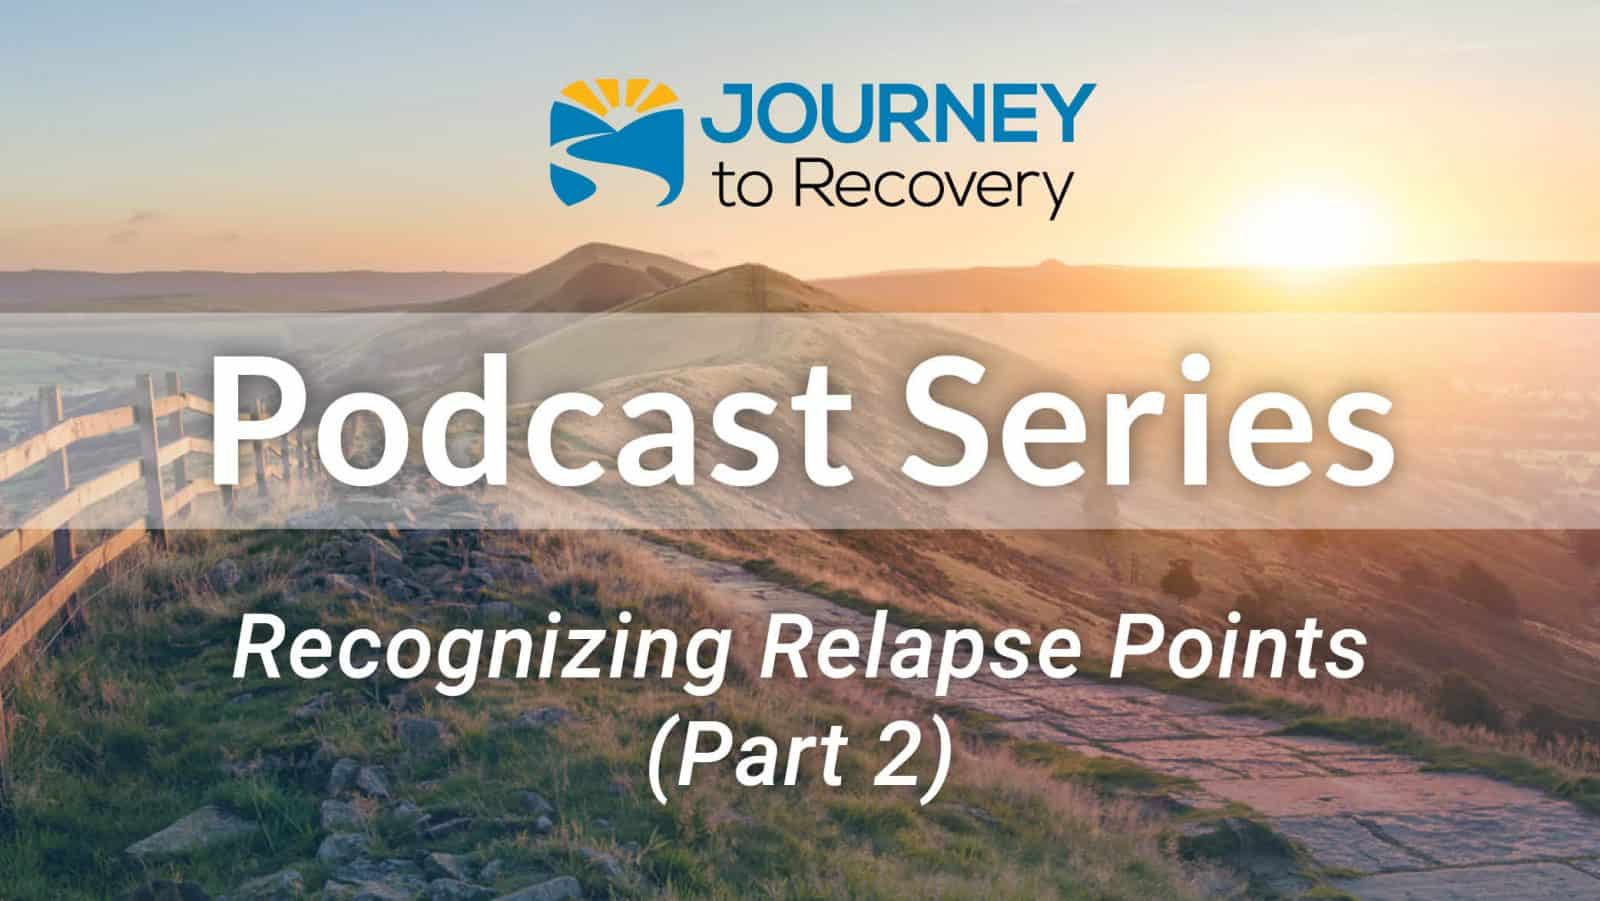 Recognizing Relapse Points (Part 2)